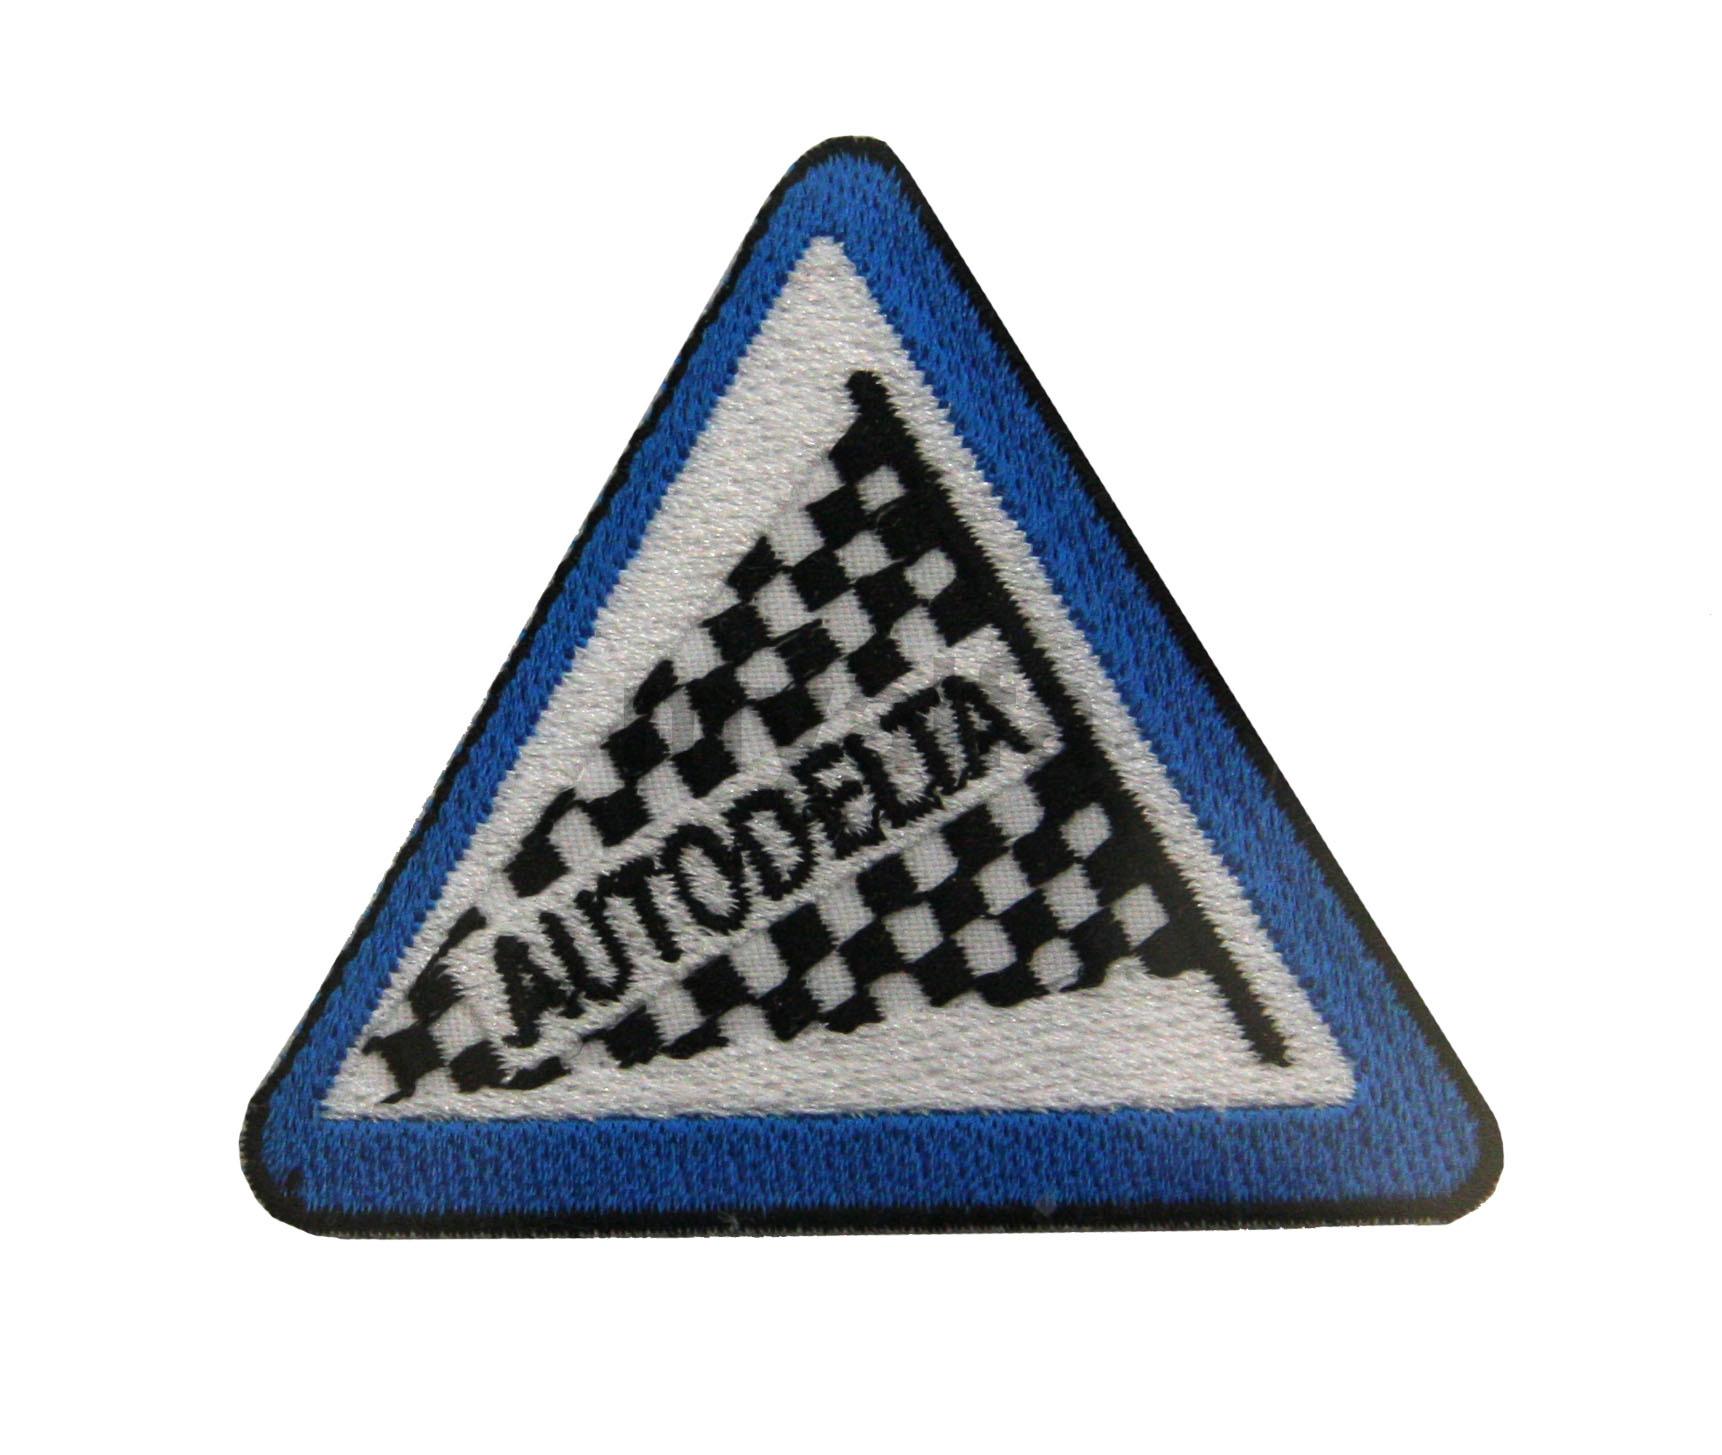 Embelema Autodelta Embroidery for Alfa Romeo, Accessories, Embroidered patches